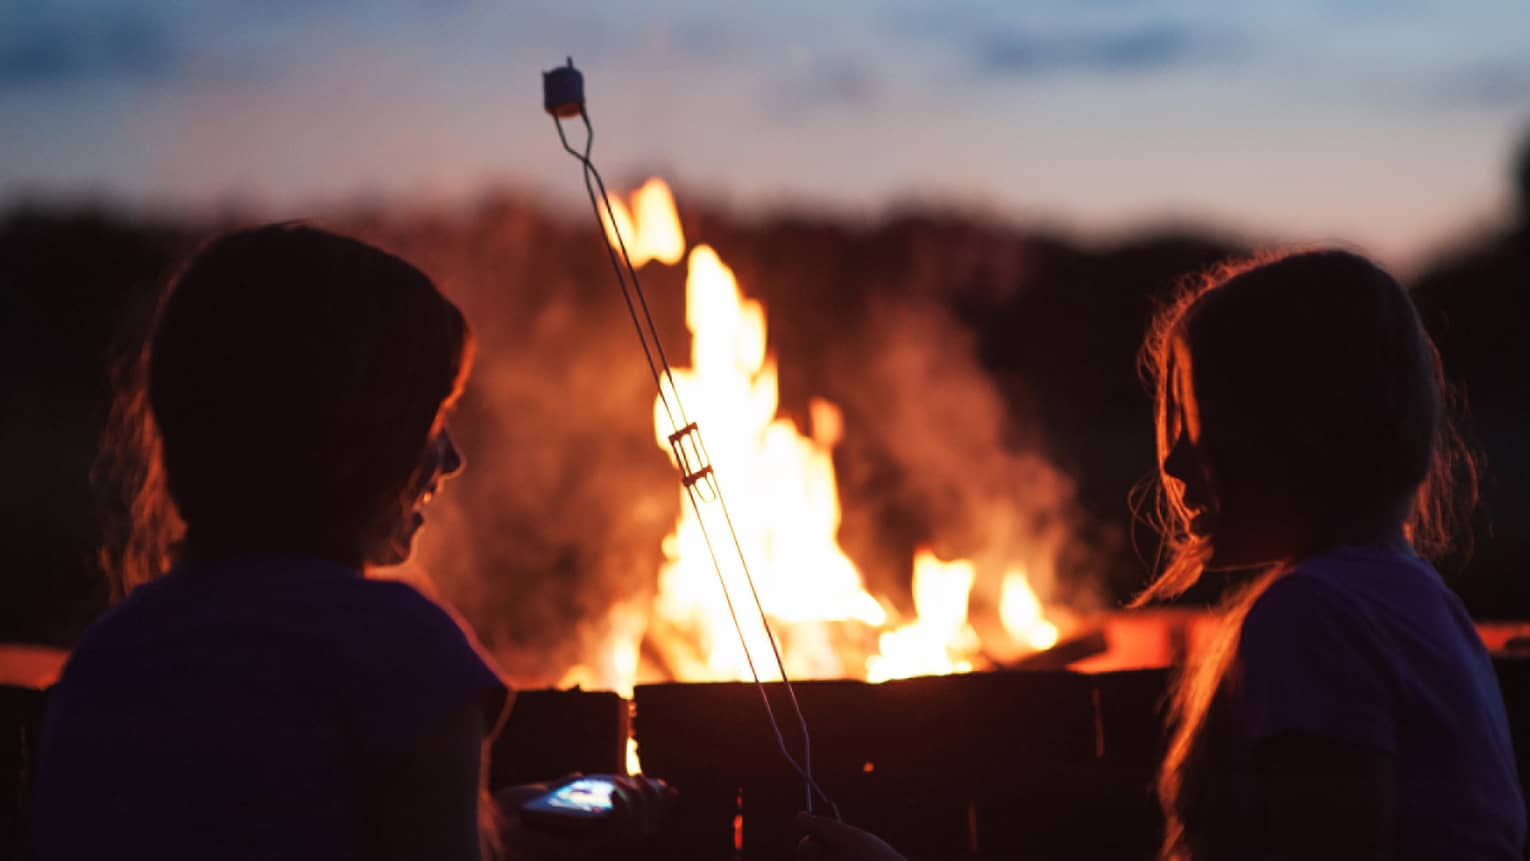 Silhouette of two children roasting marshmallows in front of roaring bonfire